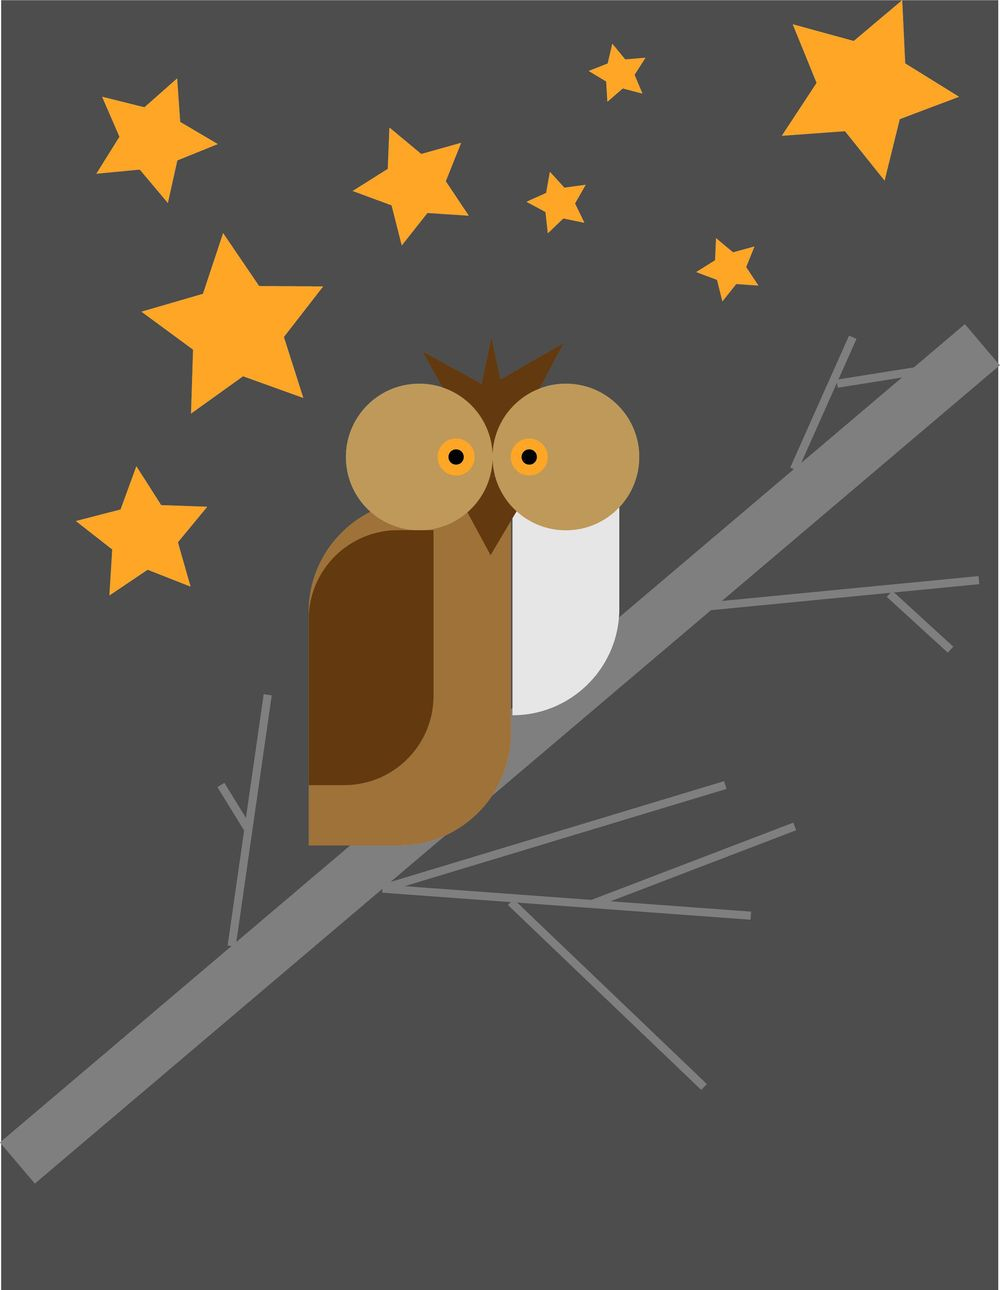 Not Sleeping Owl - image 1 - student project